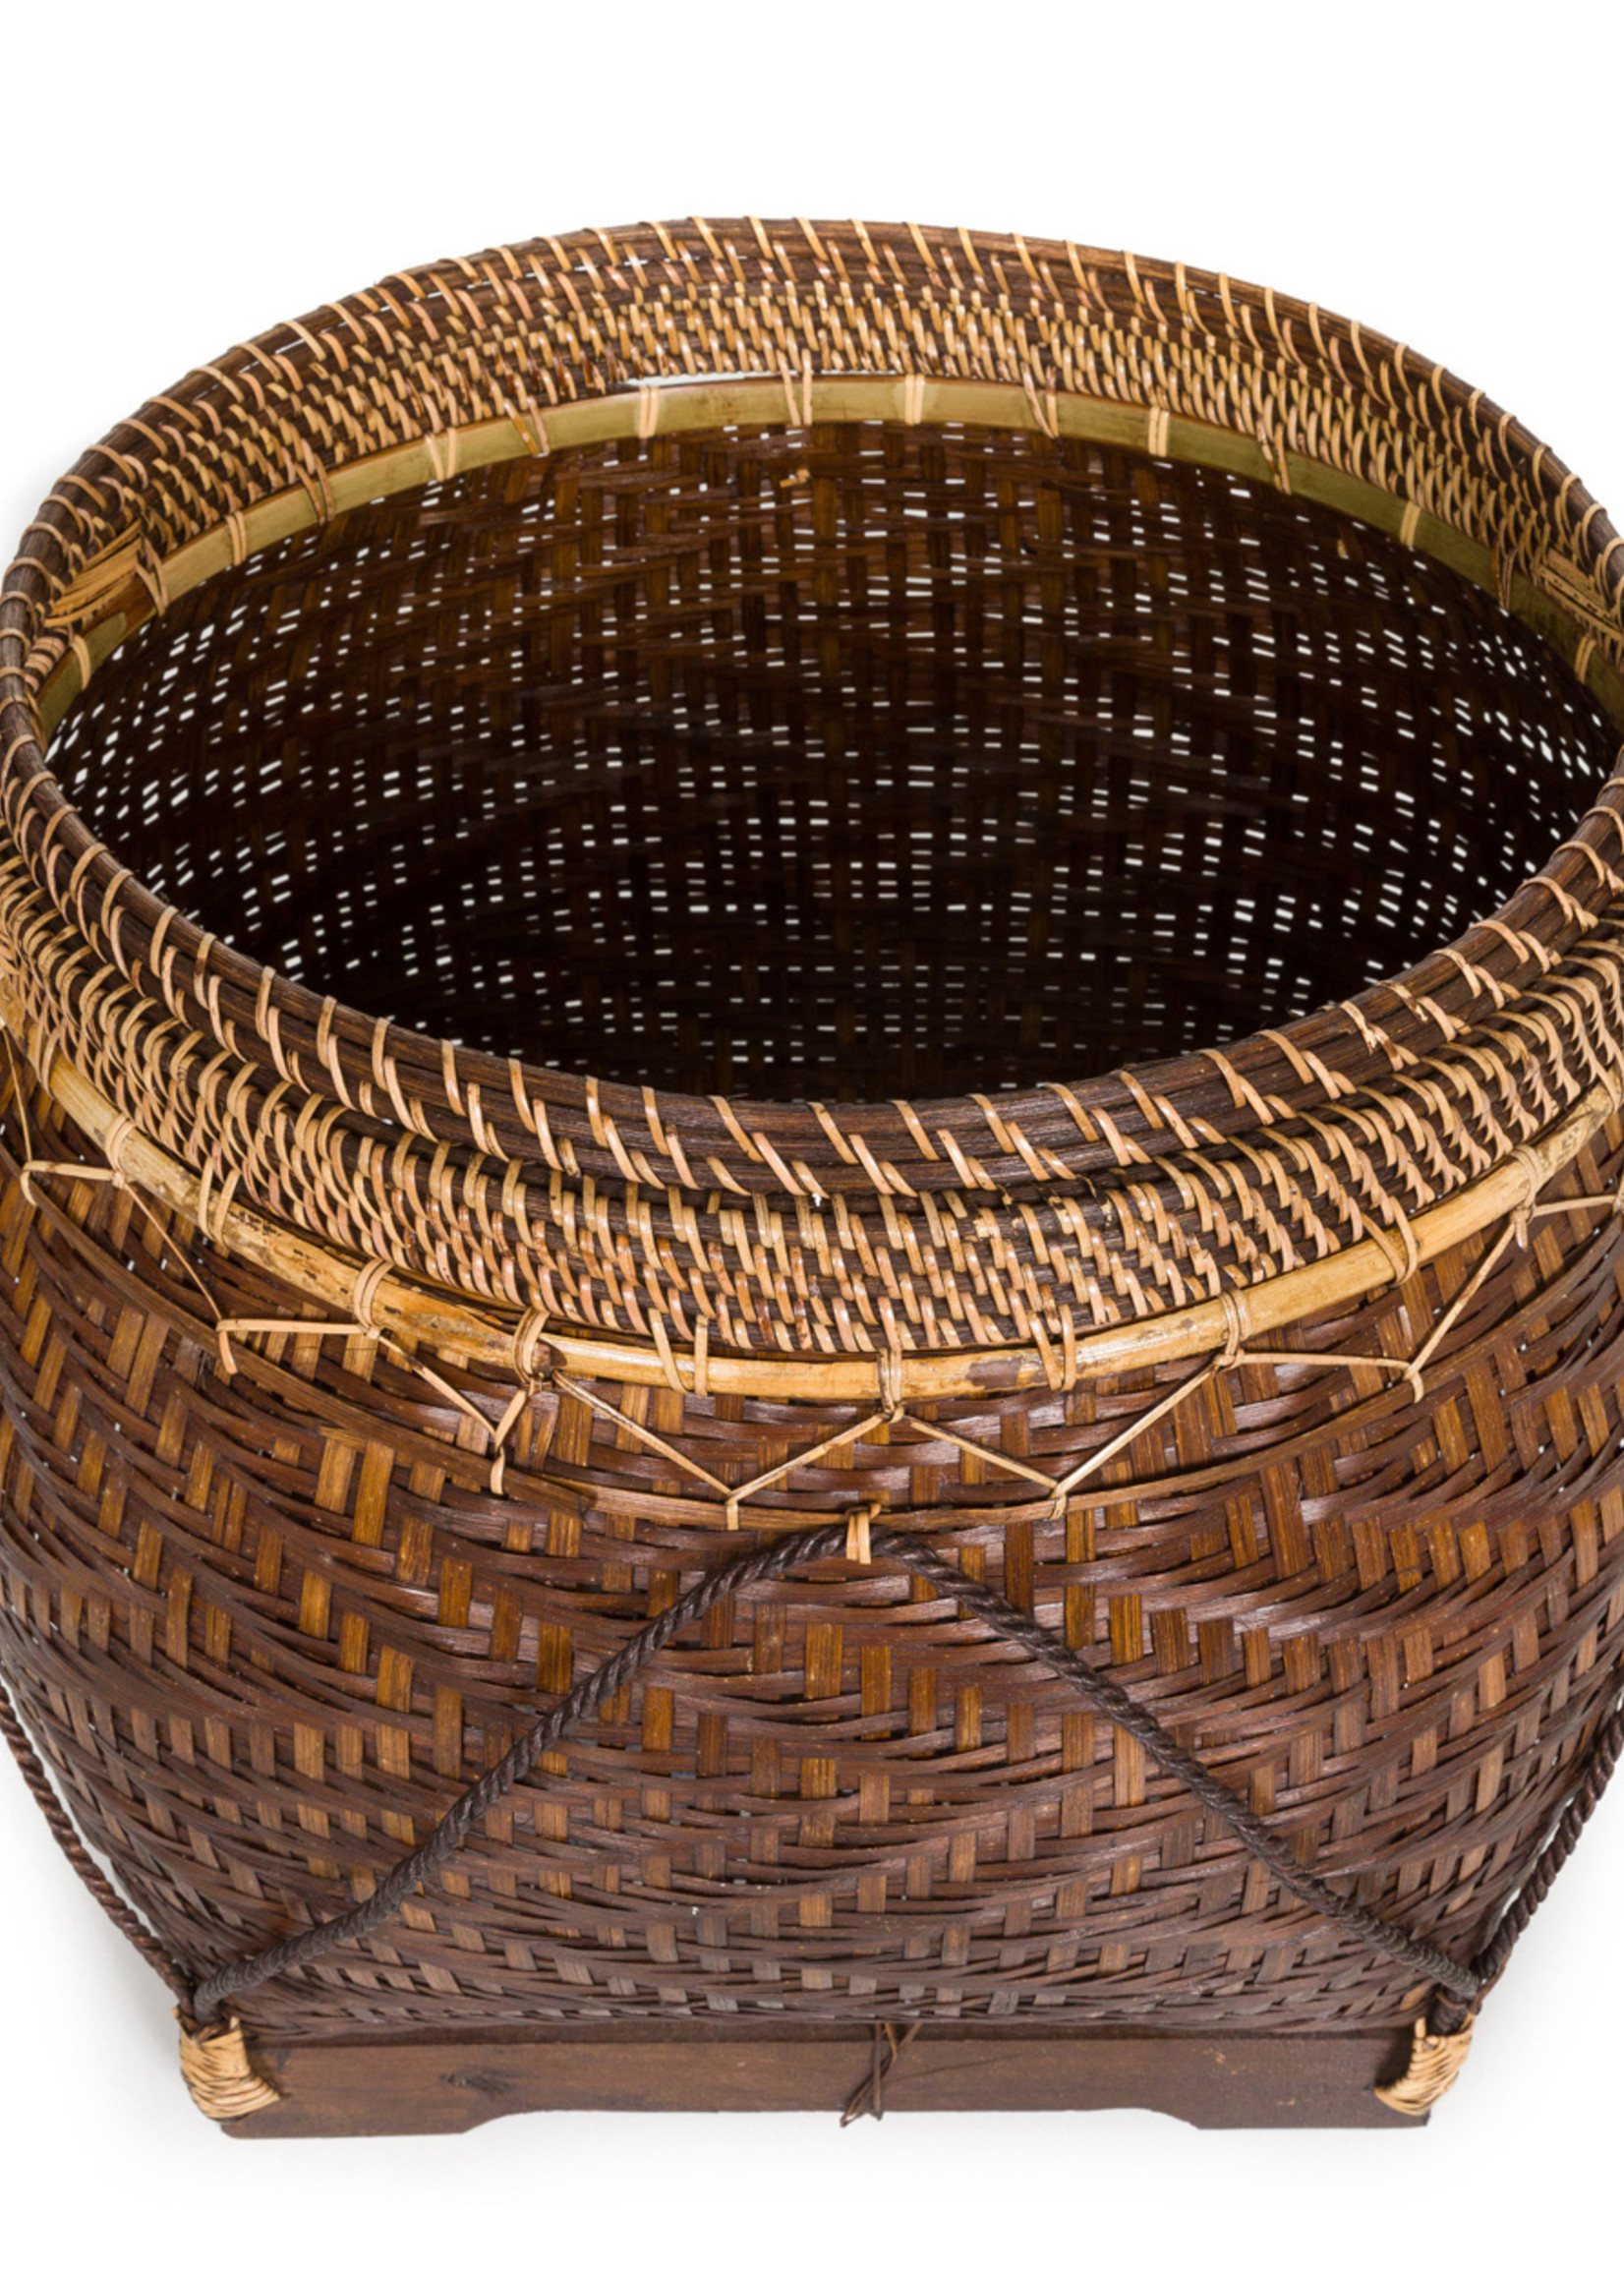 The Colonial Basket - Natural Brown